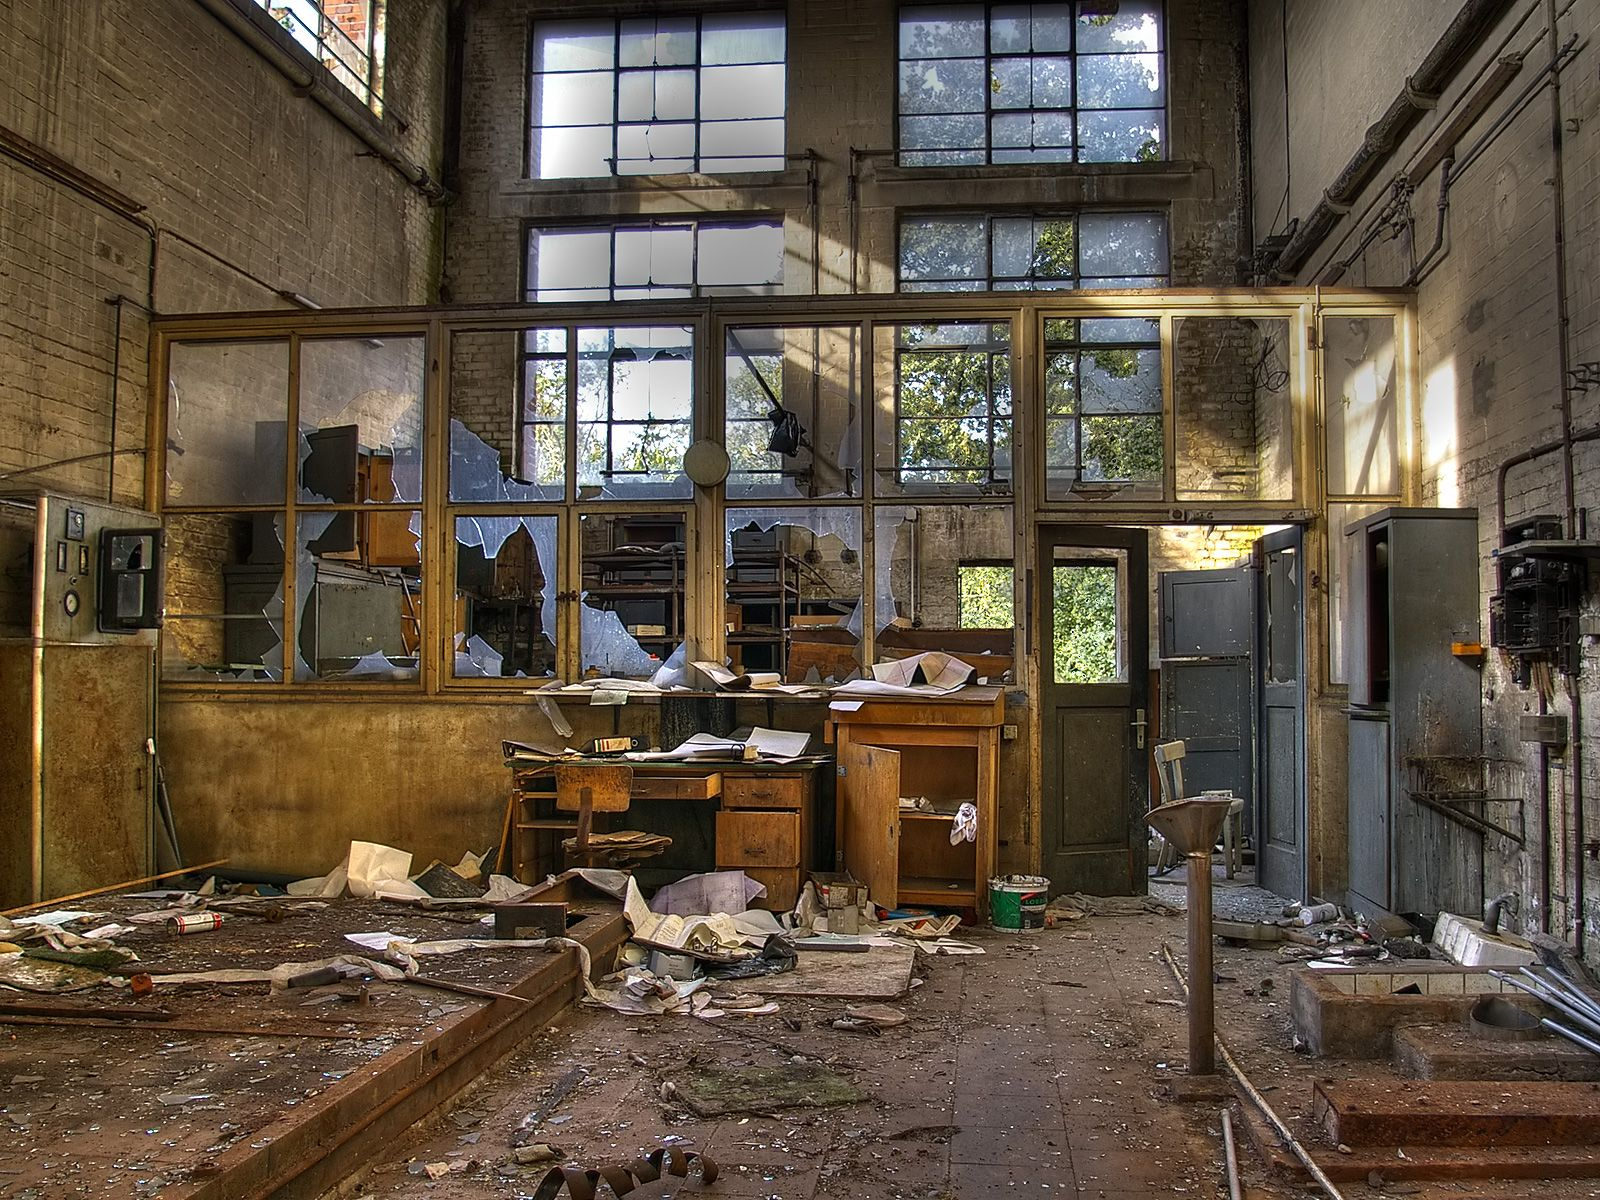 old warehouses for sale abandoned | Abandon Factory Stock